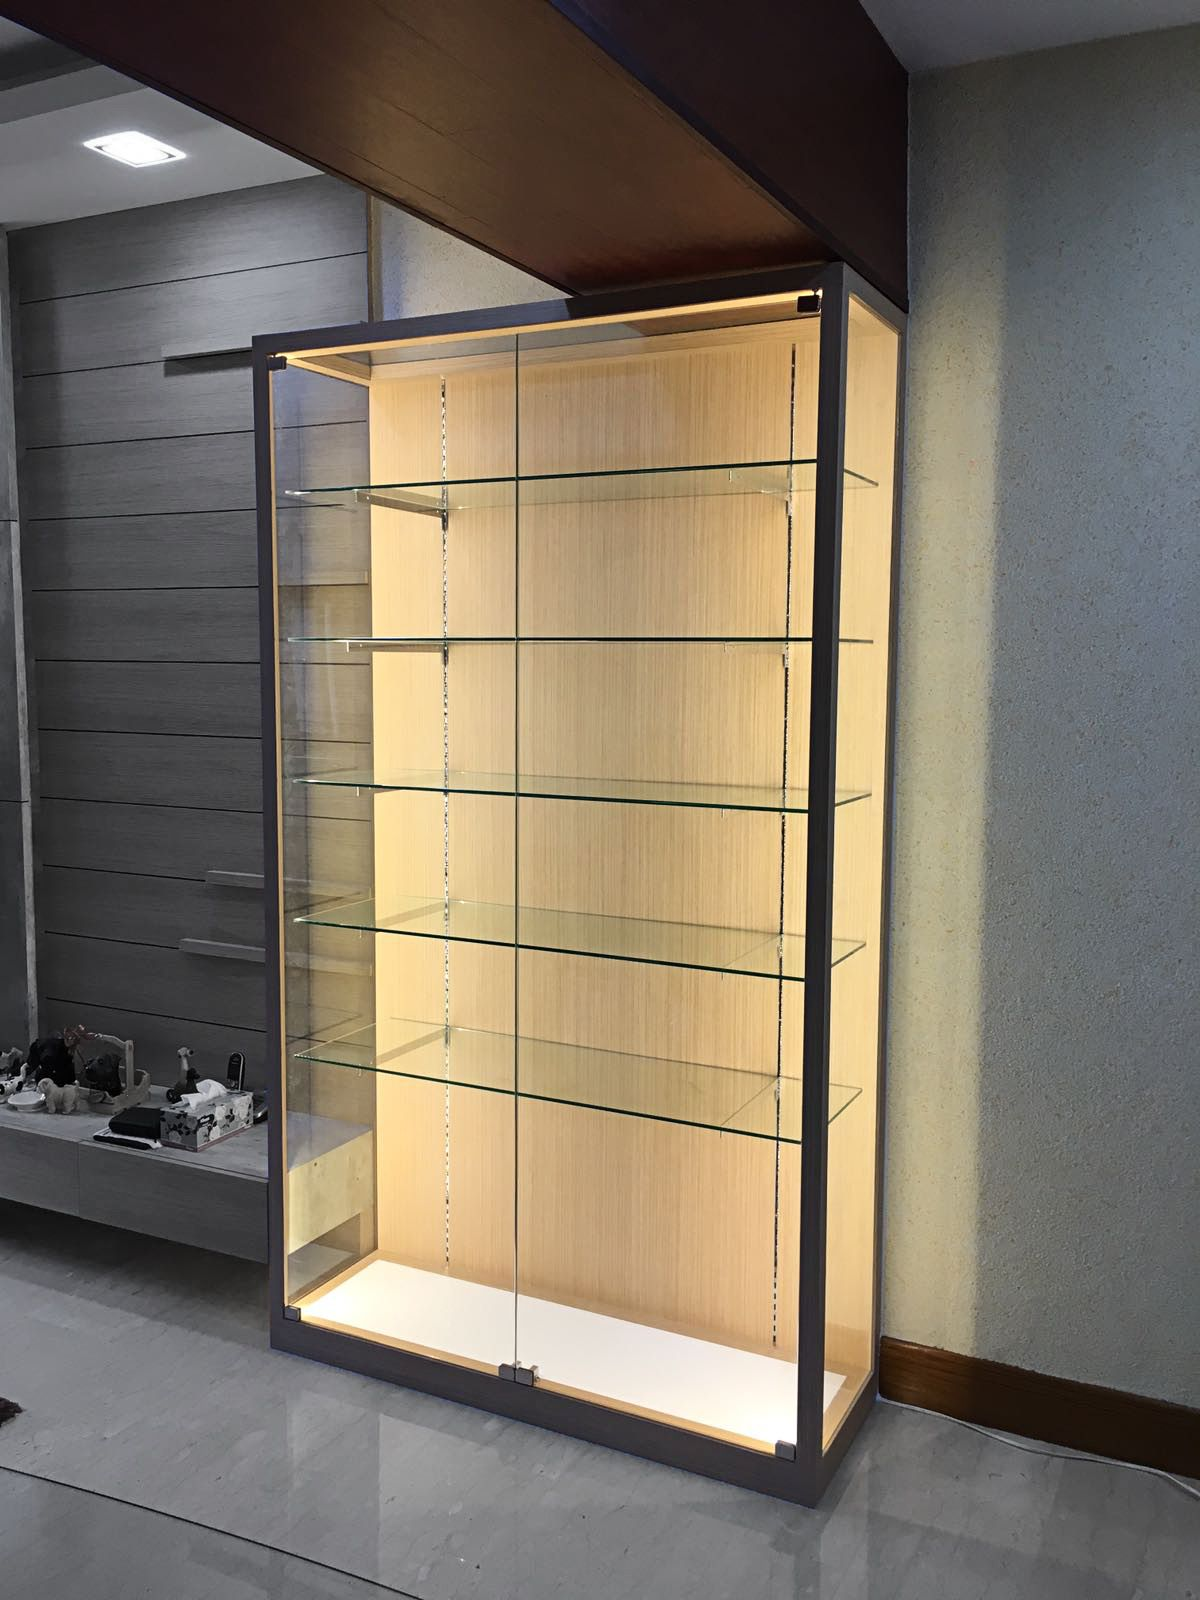 Home custom display cabinet by www.chezrich.net | Home Display ...